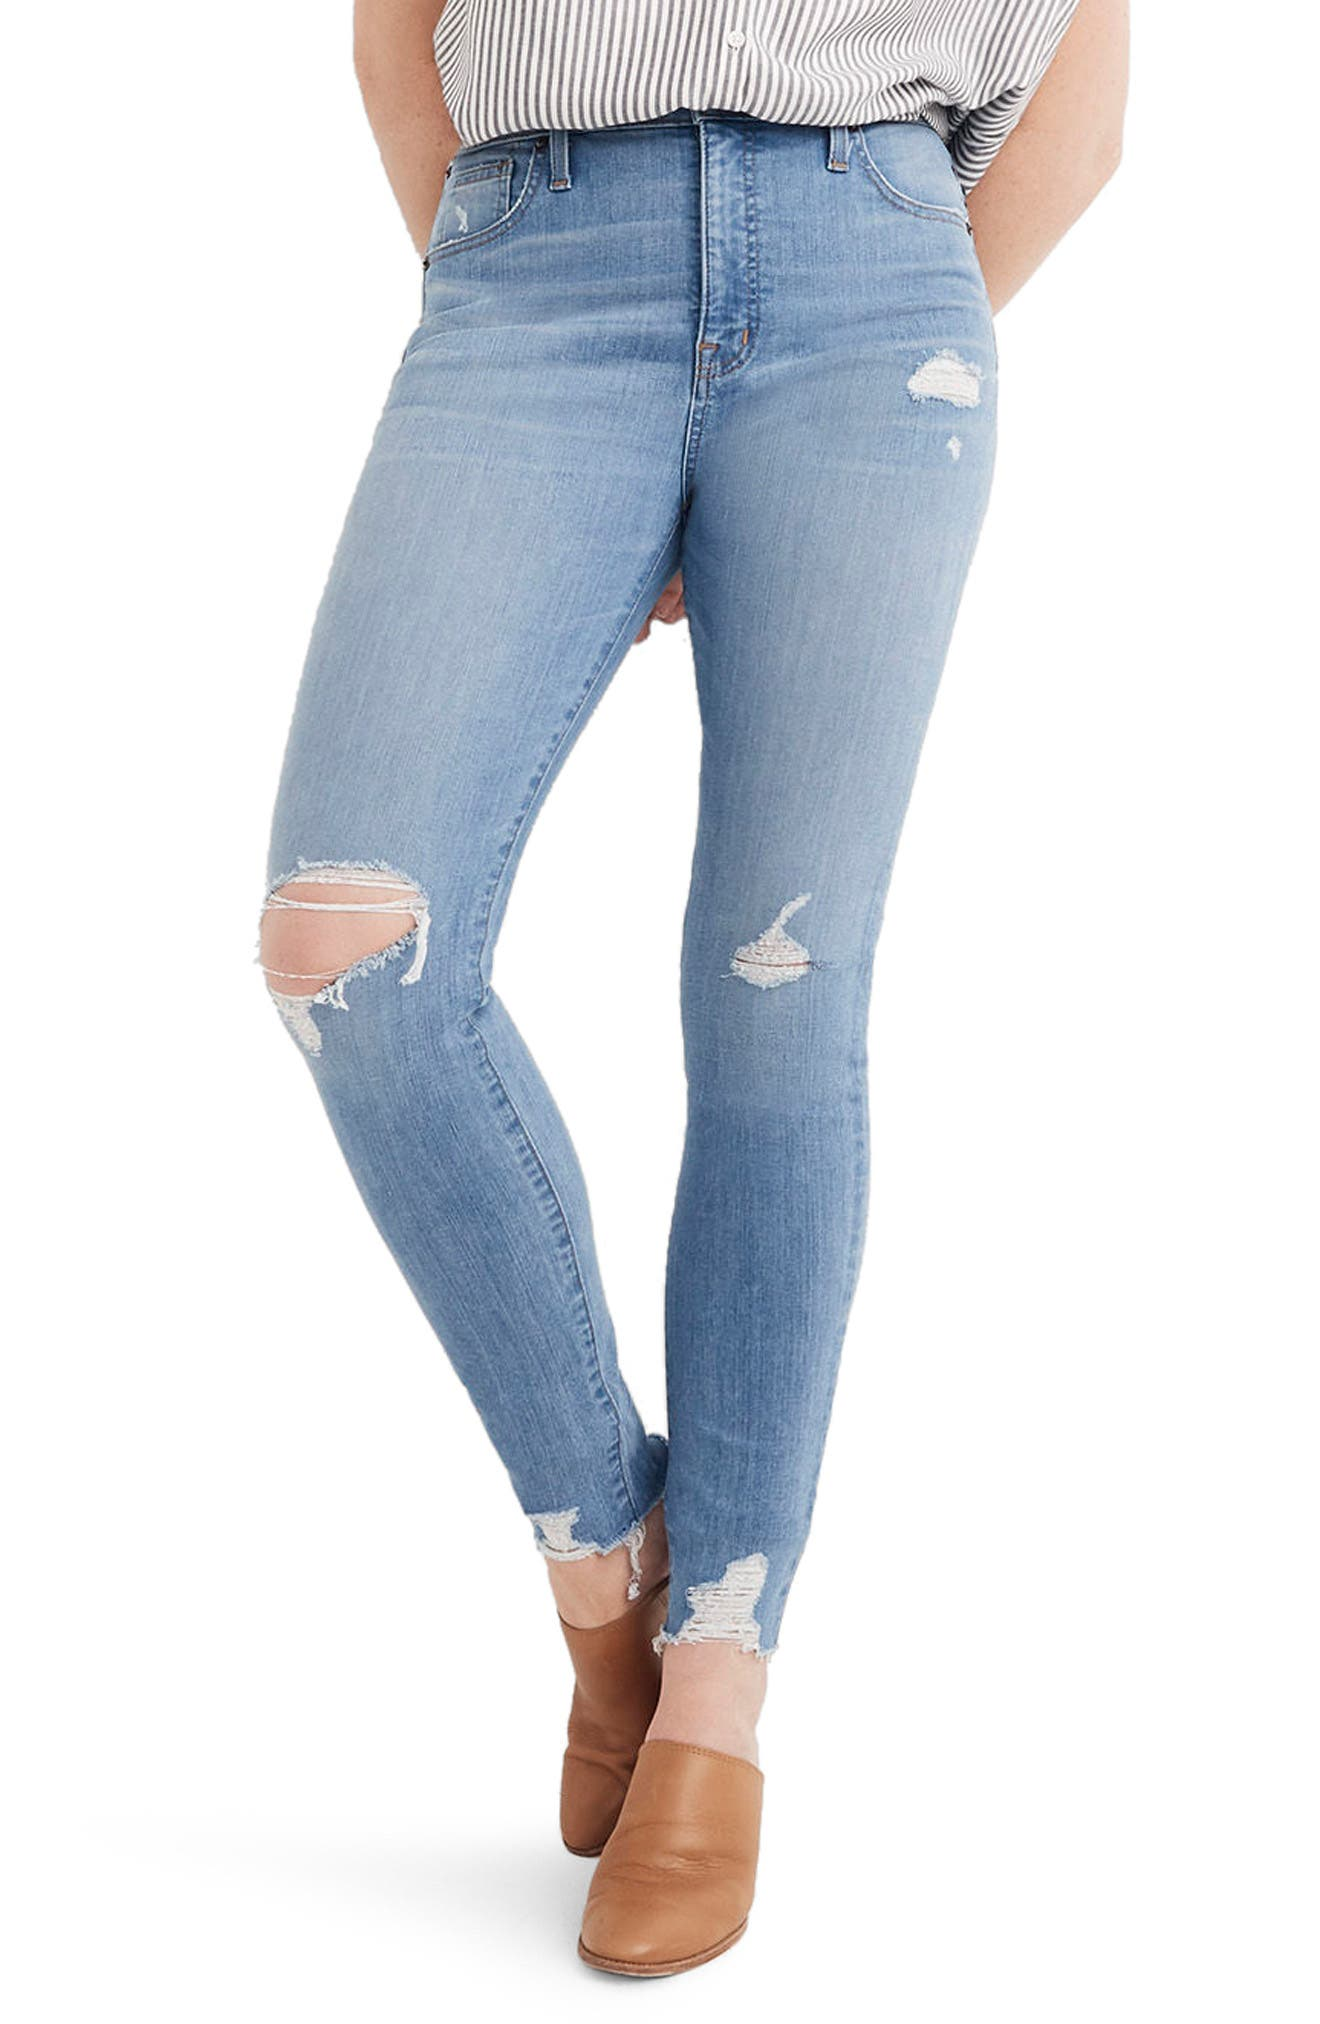 9-Inch High Waist Skinny Jeans,                         Main,                         color, 900